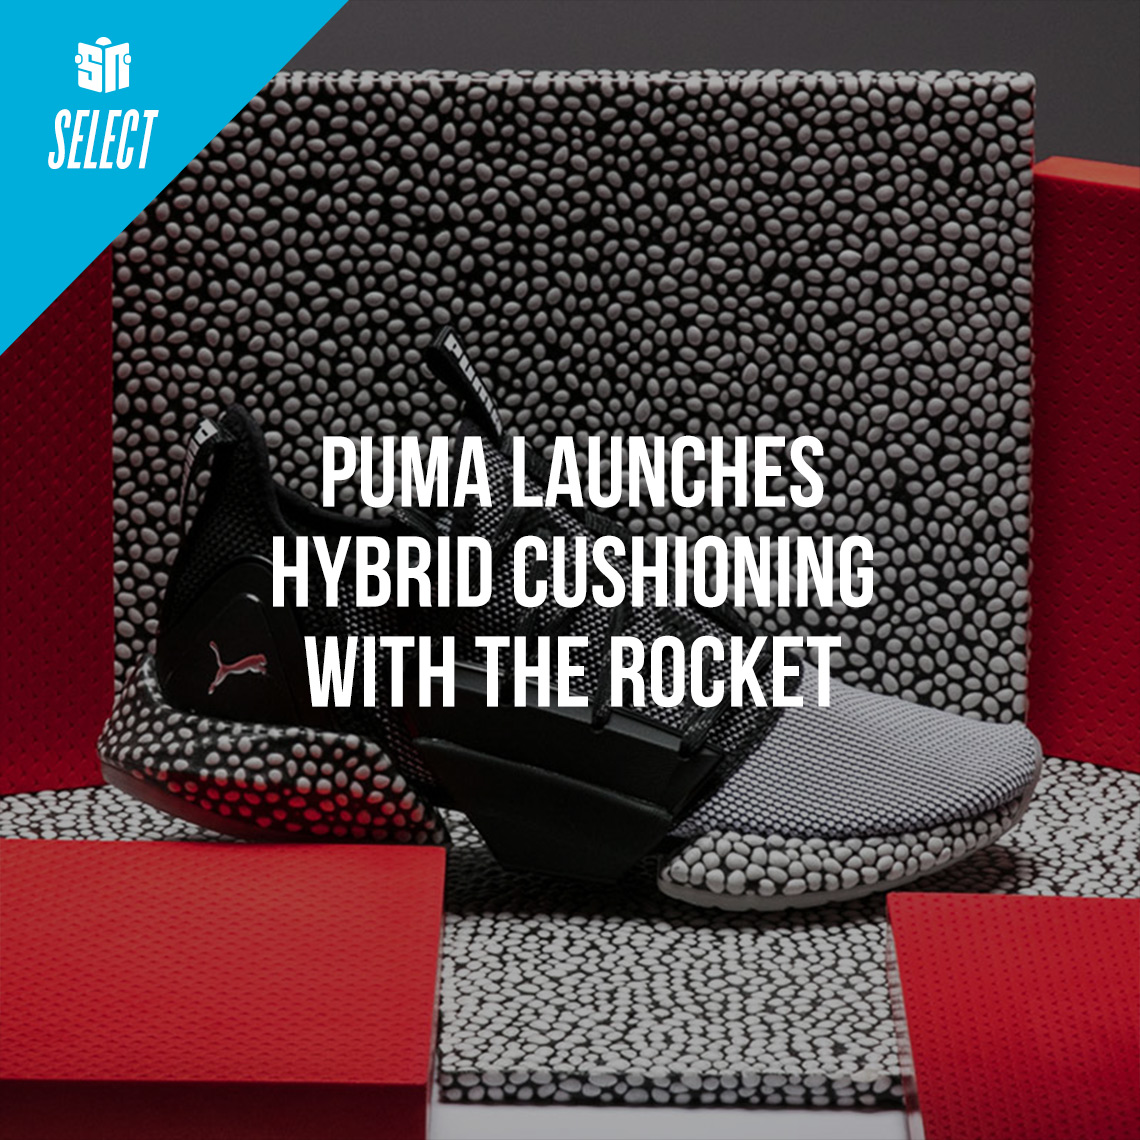 Puma Launches Hybrid Cushioning With The Rocket